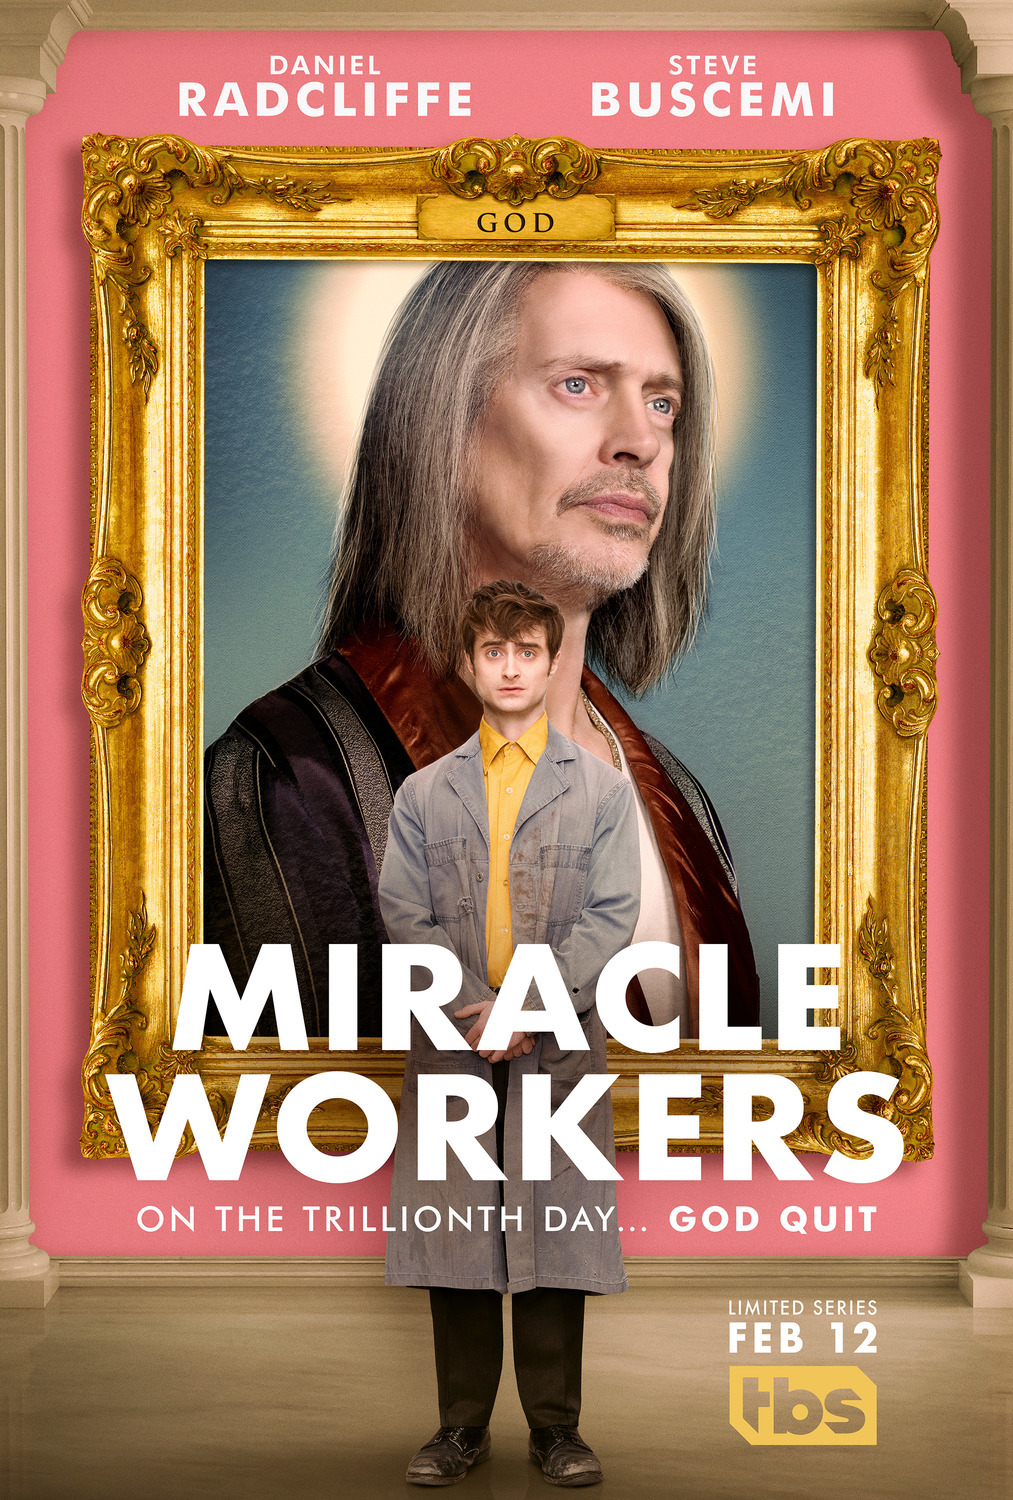 Miracle.Workers.S01E02.GERMAN.DUBBED.WEBRiP.x264-idTV